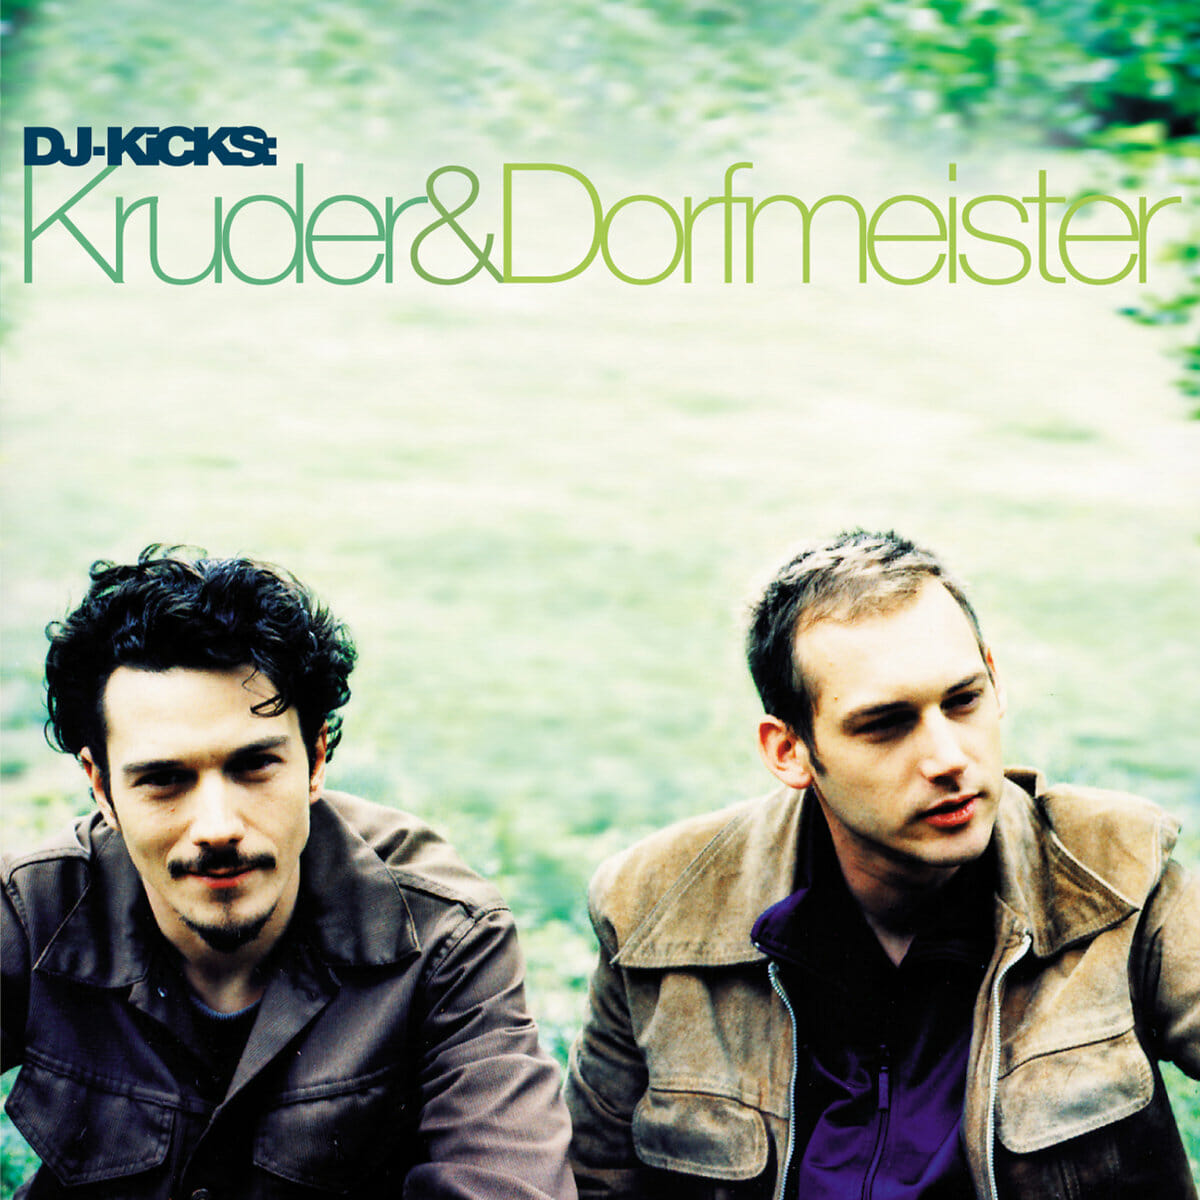 You are currently viewing Kruder & Dorfmeister Part 2 THE LIGHT (E3)